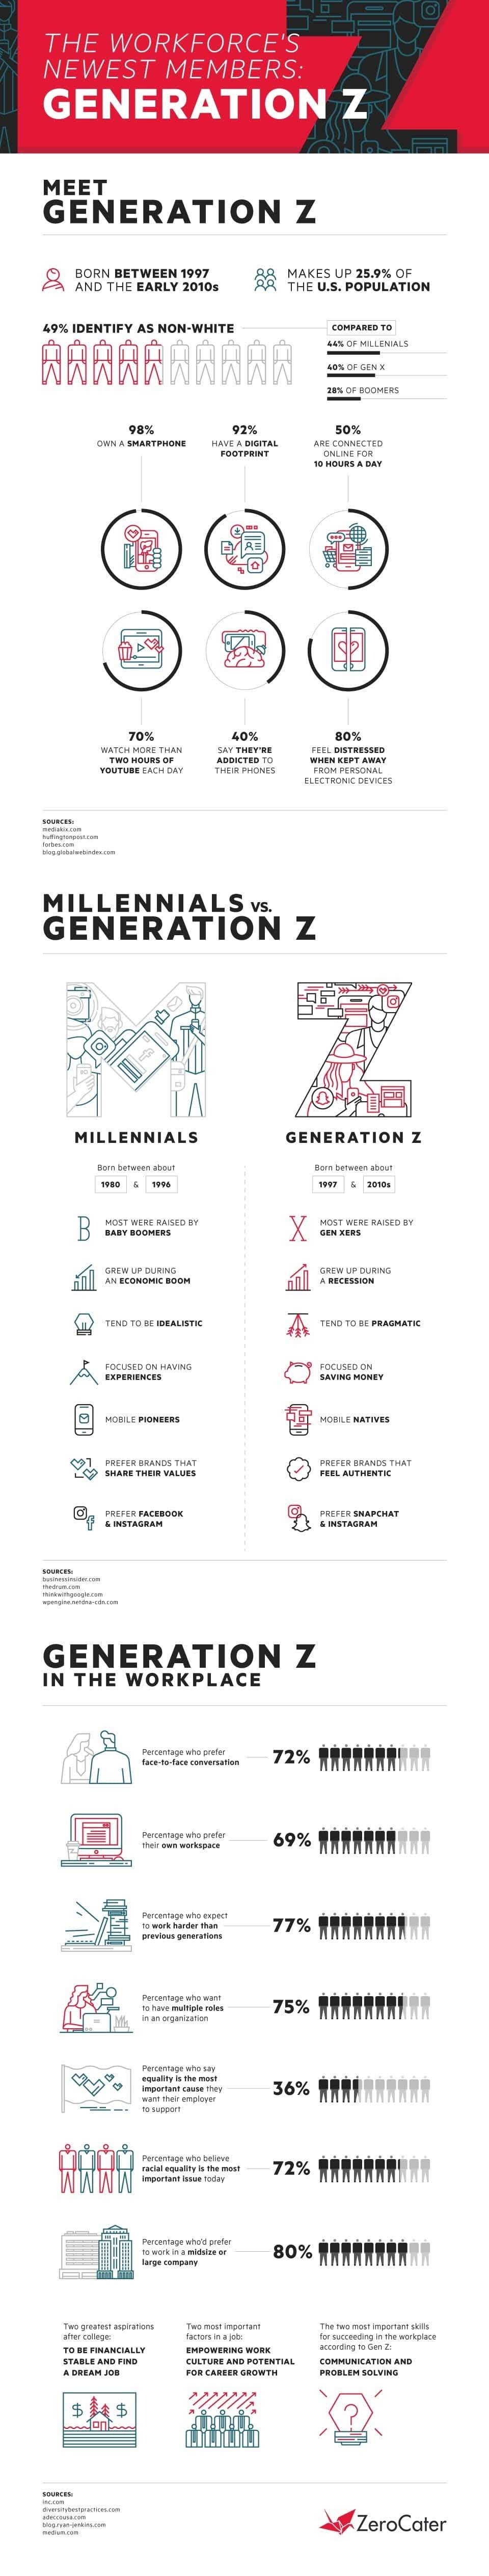 Millennials VS Generation Z: Differences In Lifestyle, Preferences, More - infographic